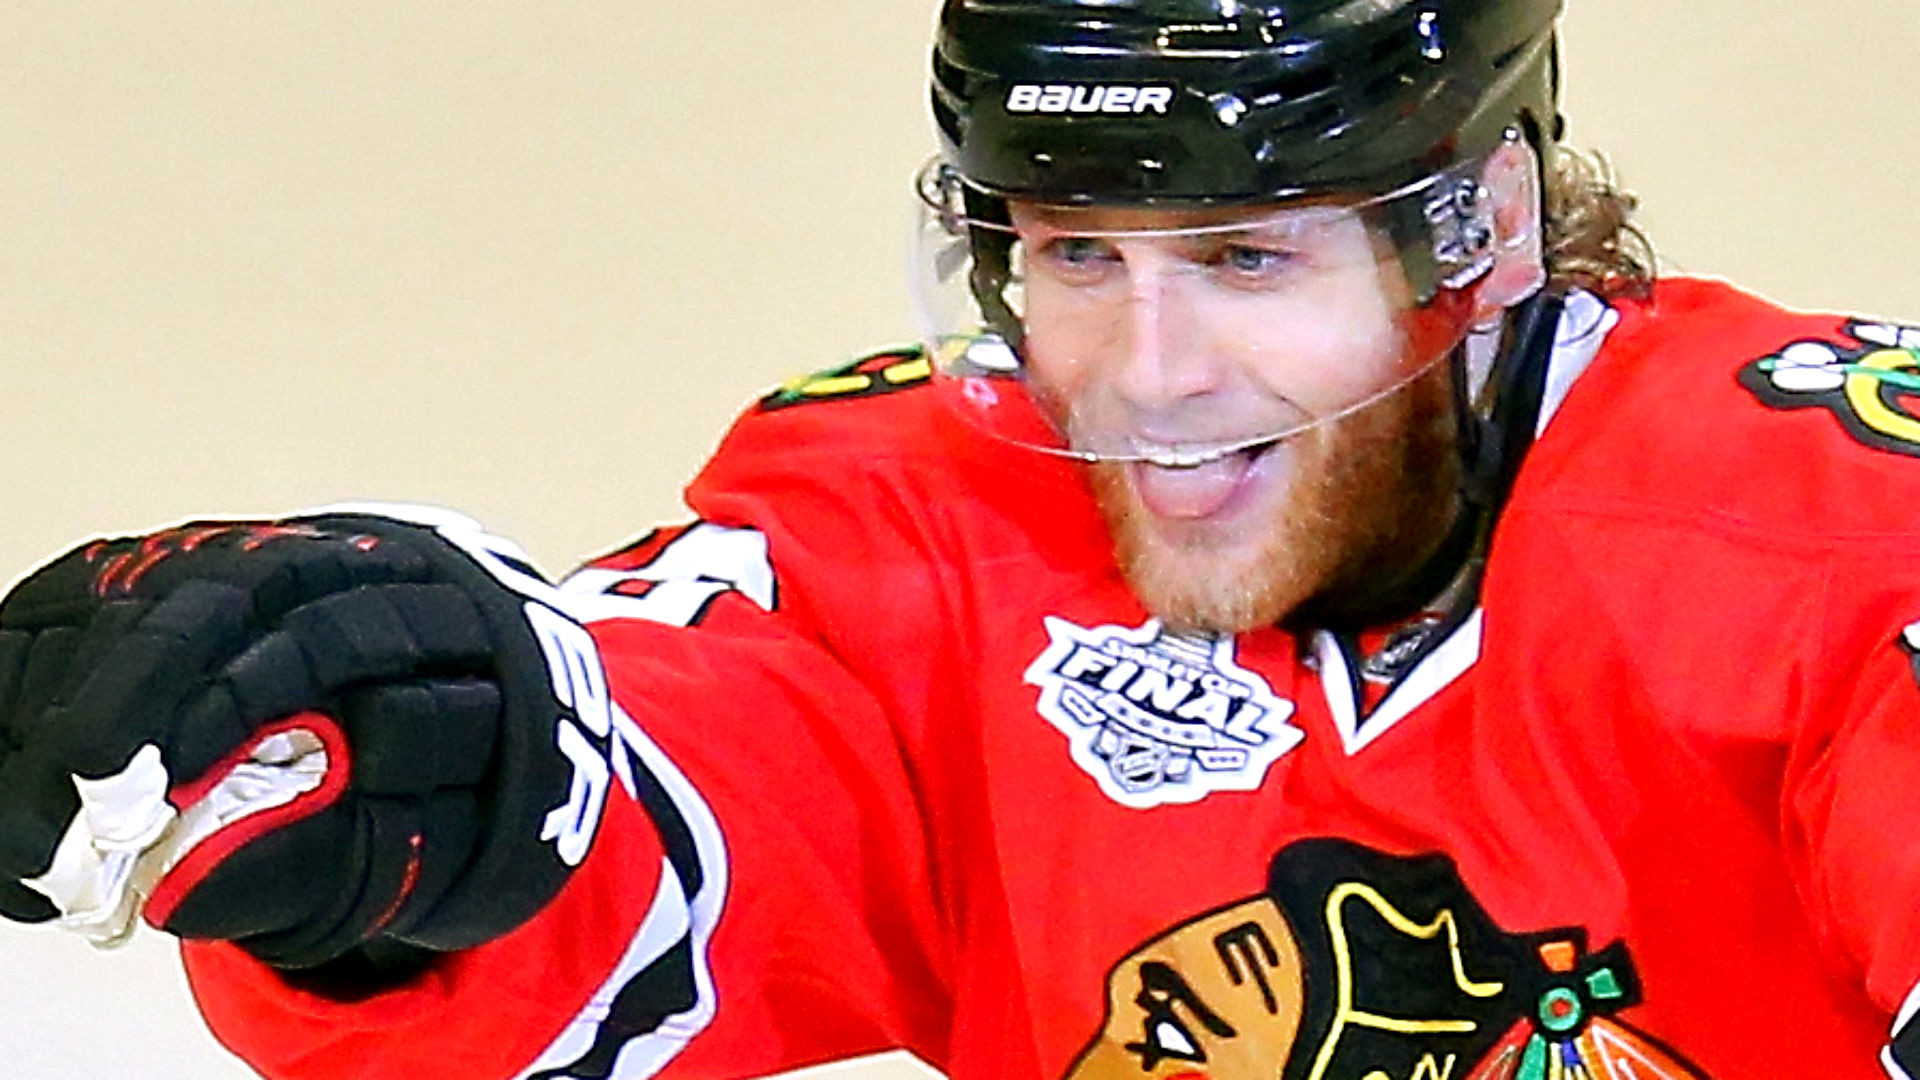 1920x1080 Patrick Kane investigation continues as details slowly come out | NHL |  Sporting News